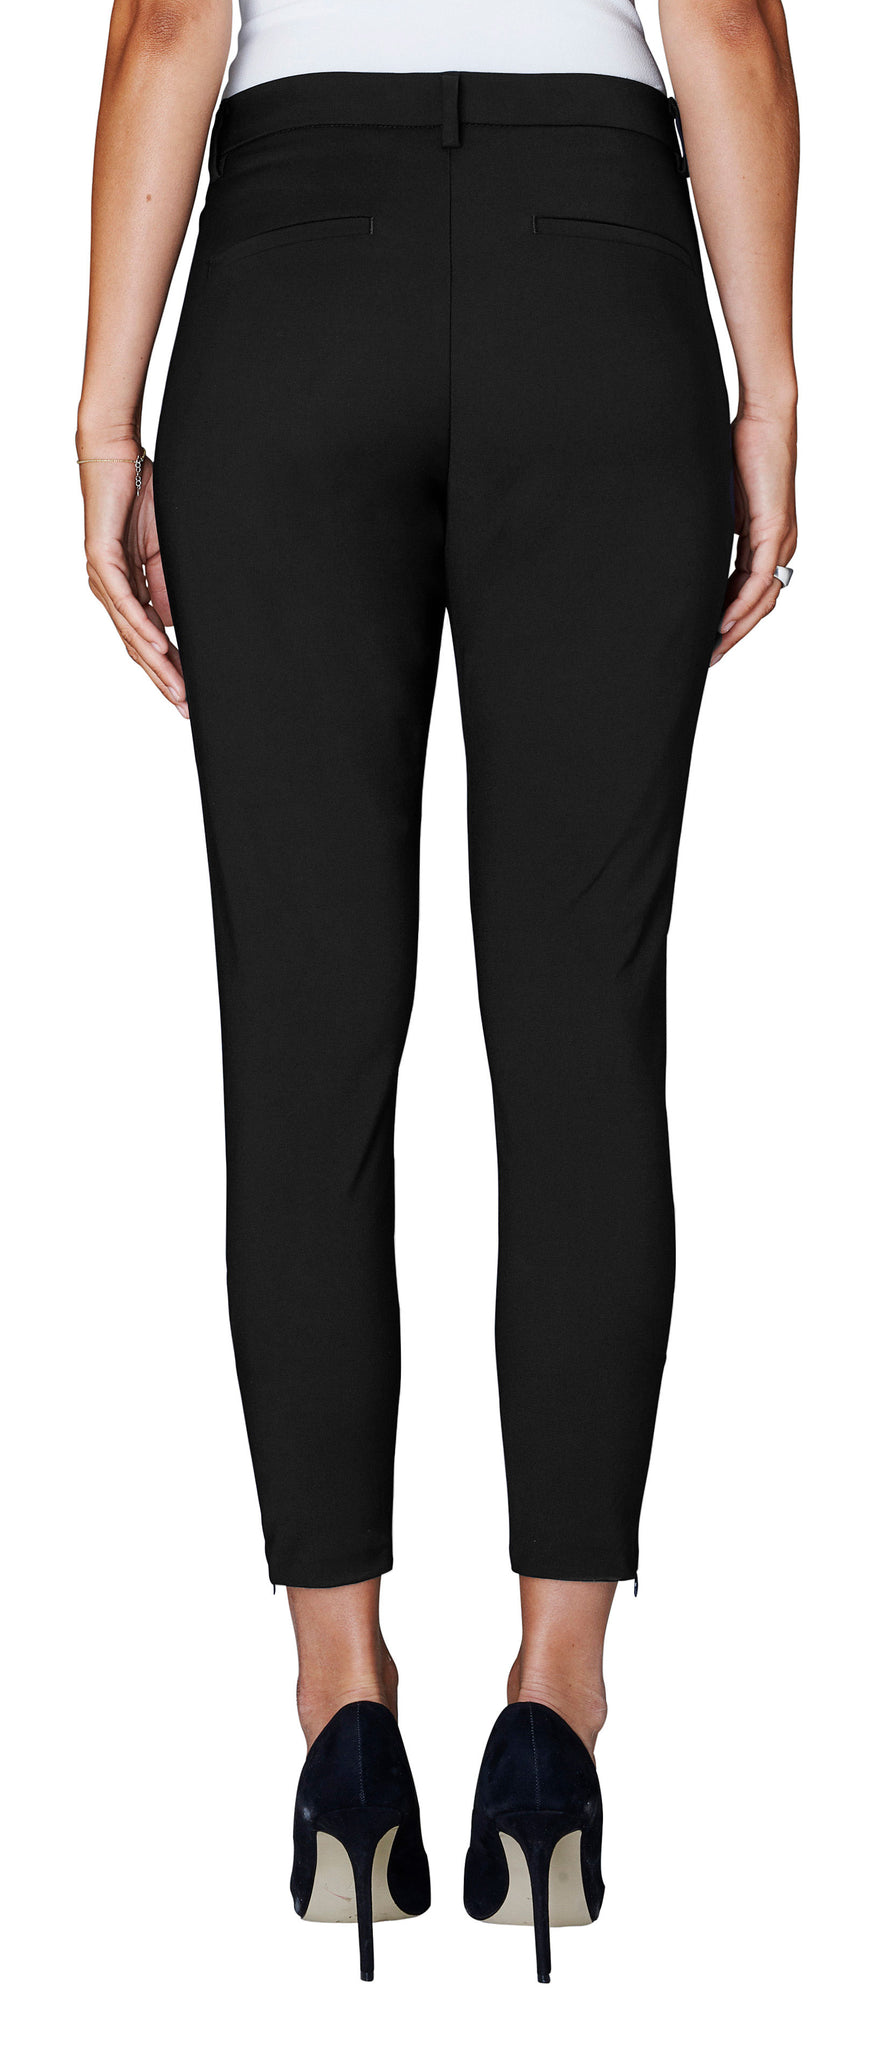 FIVEUNITS - ANGELIE ZIP PANT - BLACK